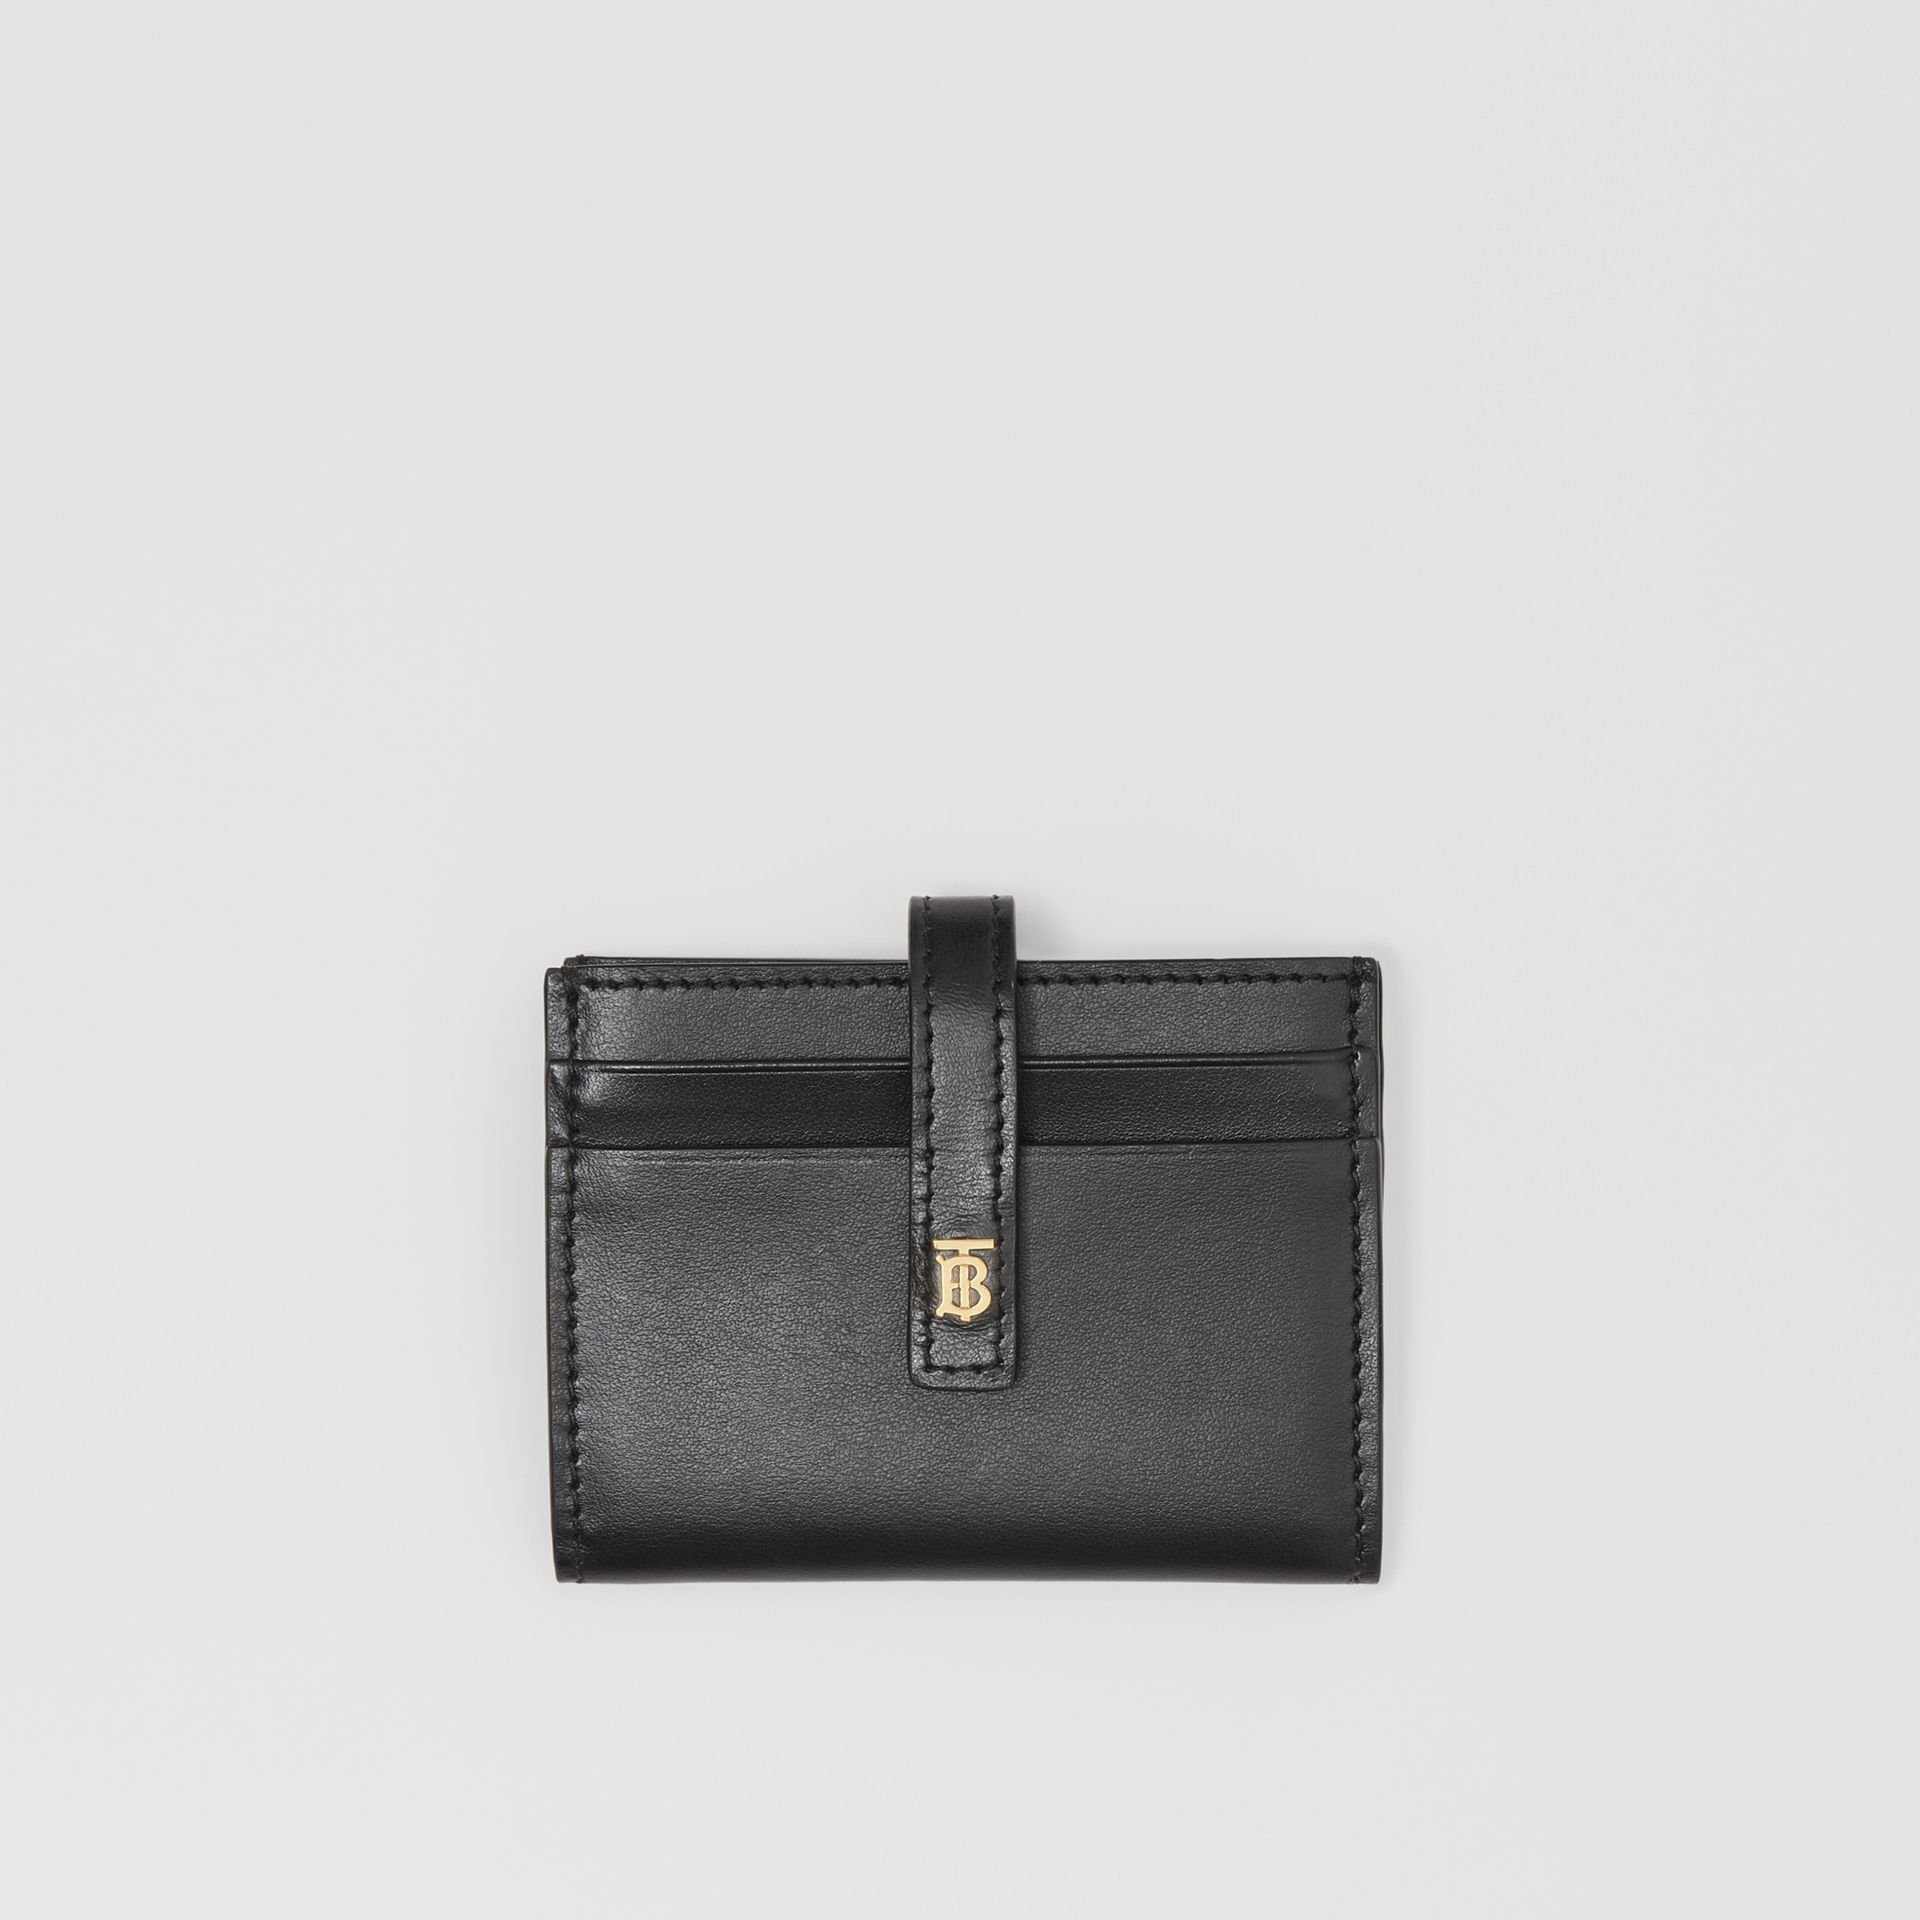 Monogram Motif Leather Folding Card Case in Black - Women | Burberry Singapore - gallery image 0